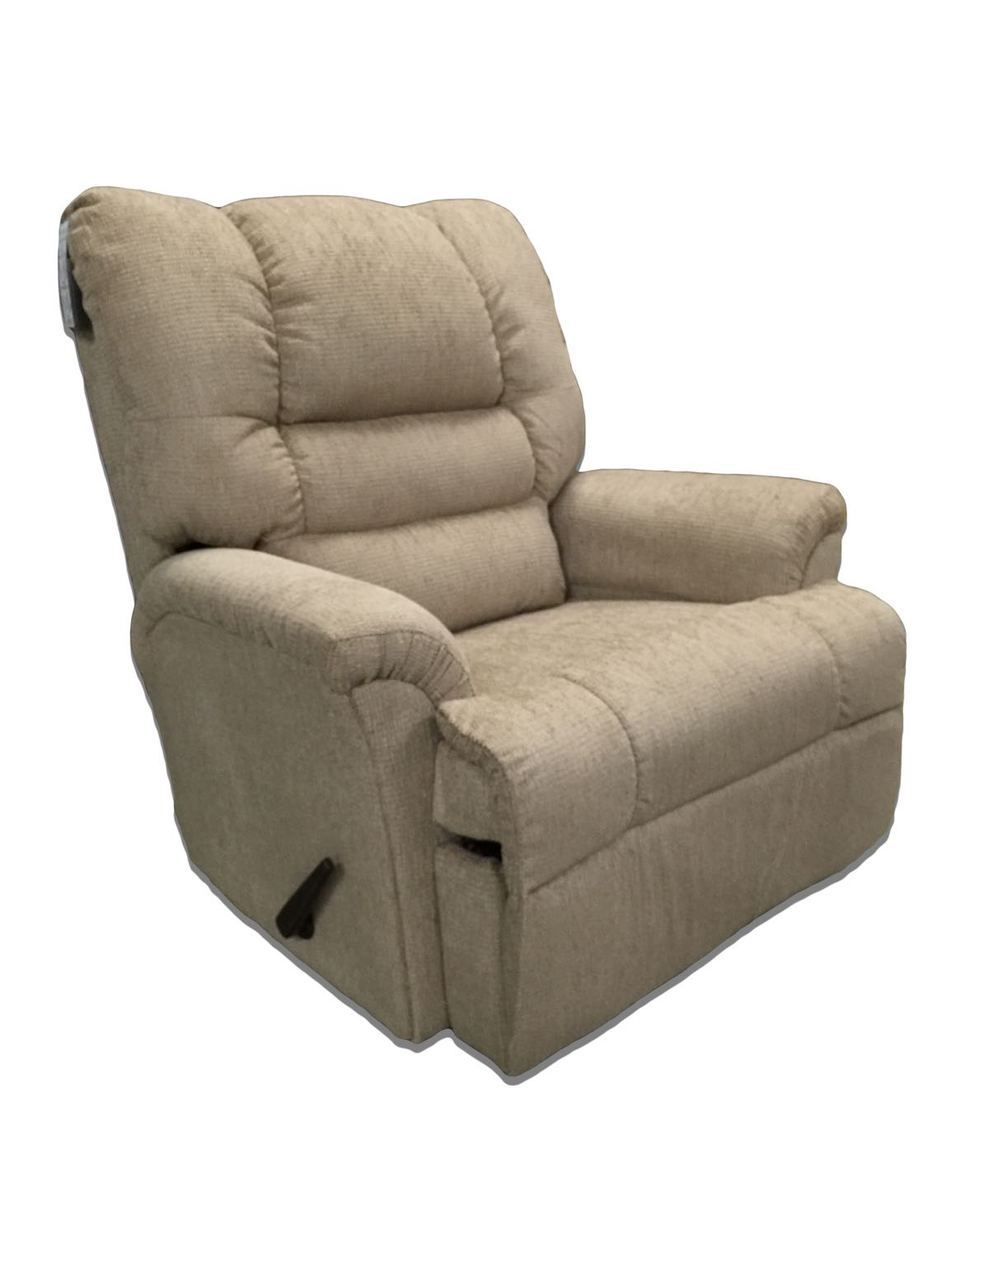 Recliners factory direct furniture 4u for Factory direct furniture